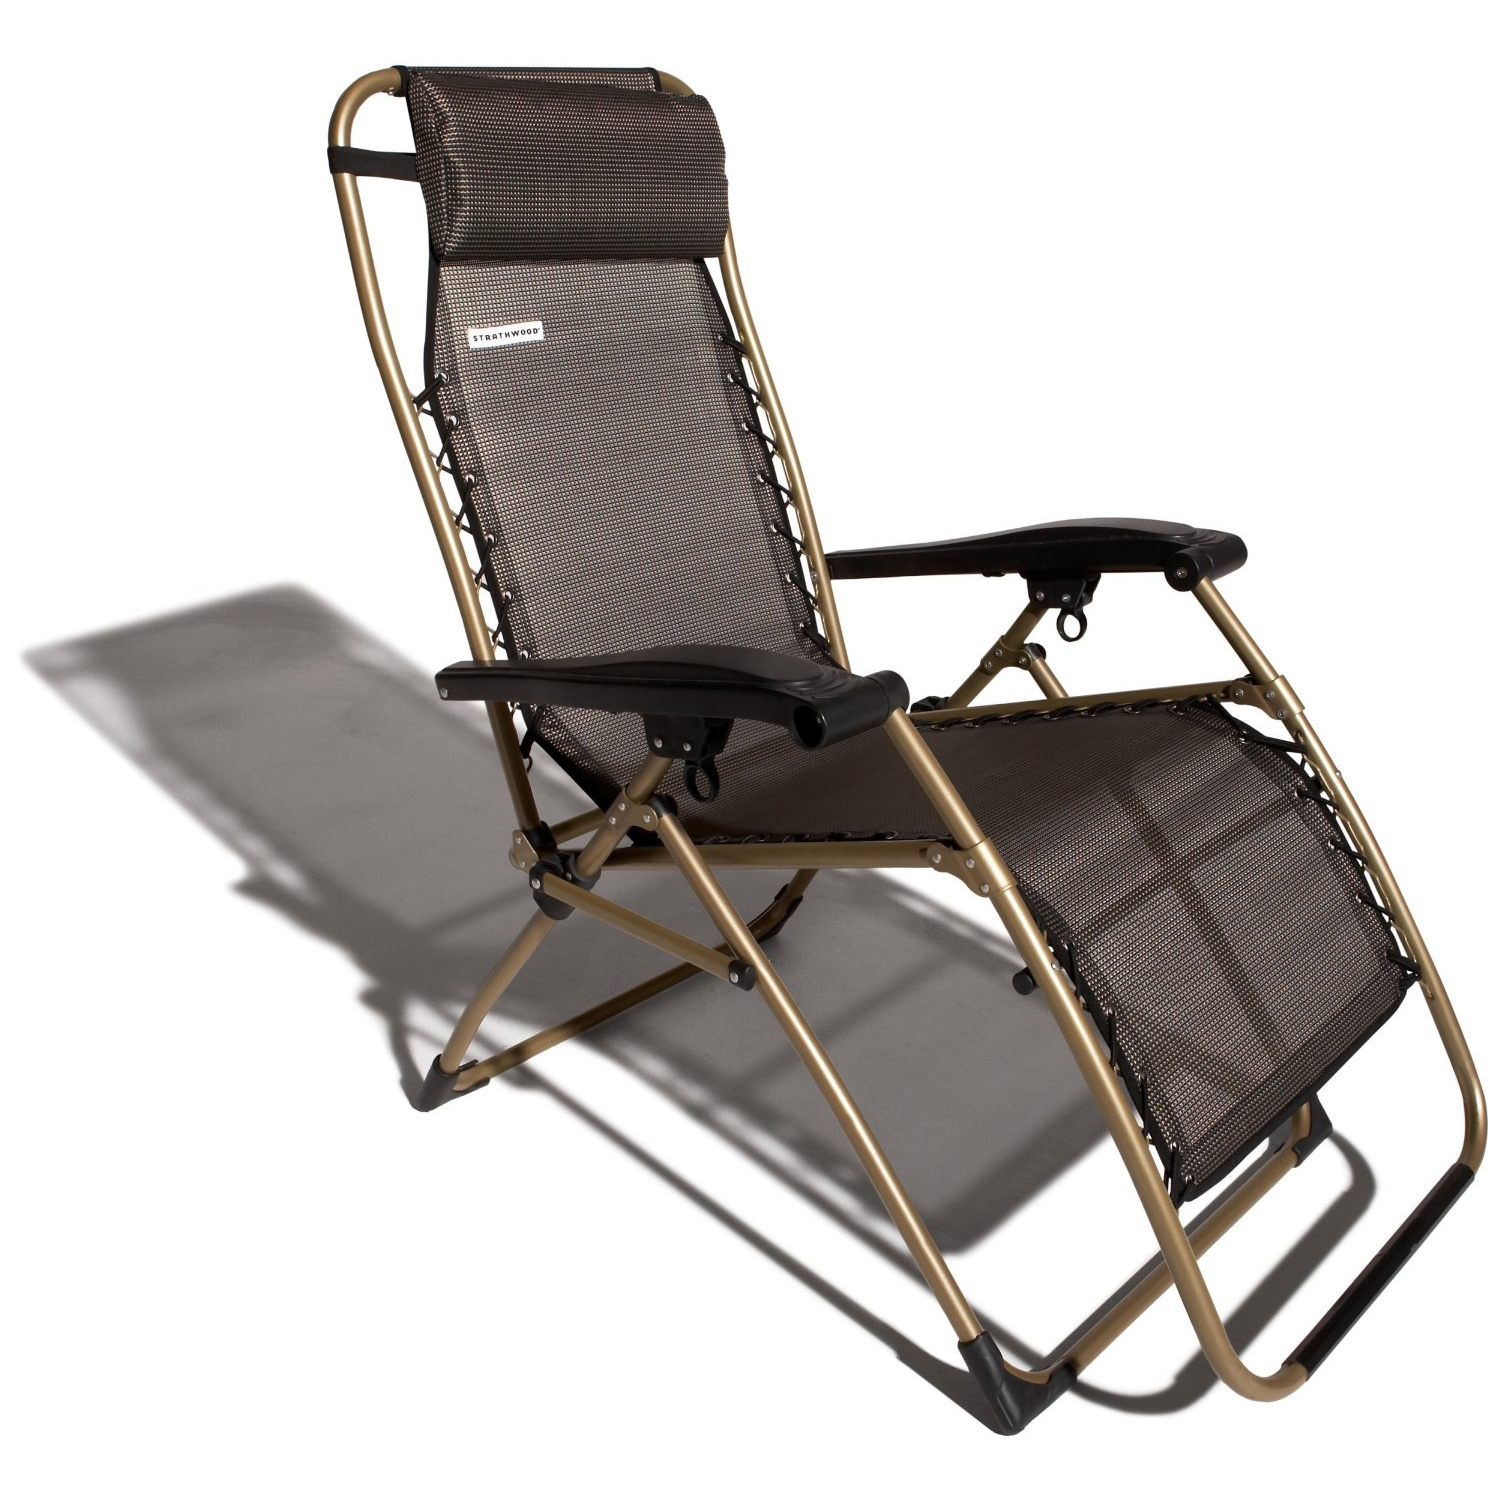 Ergonomic patio lounge chairs